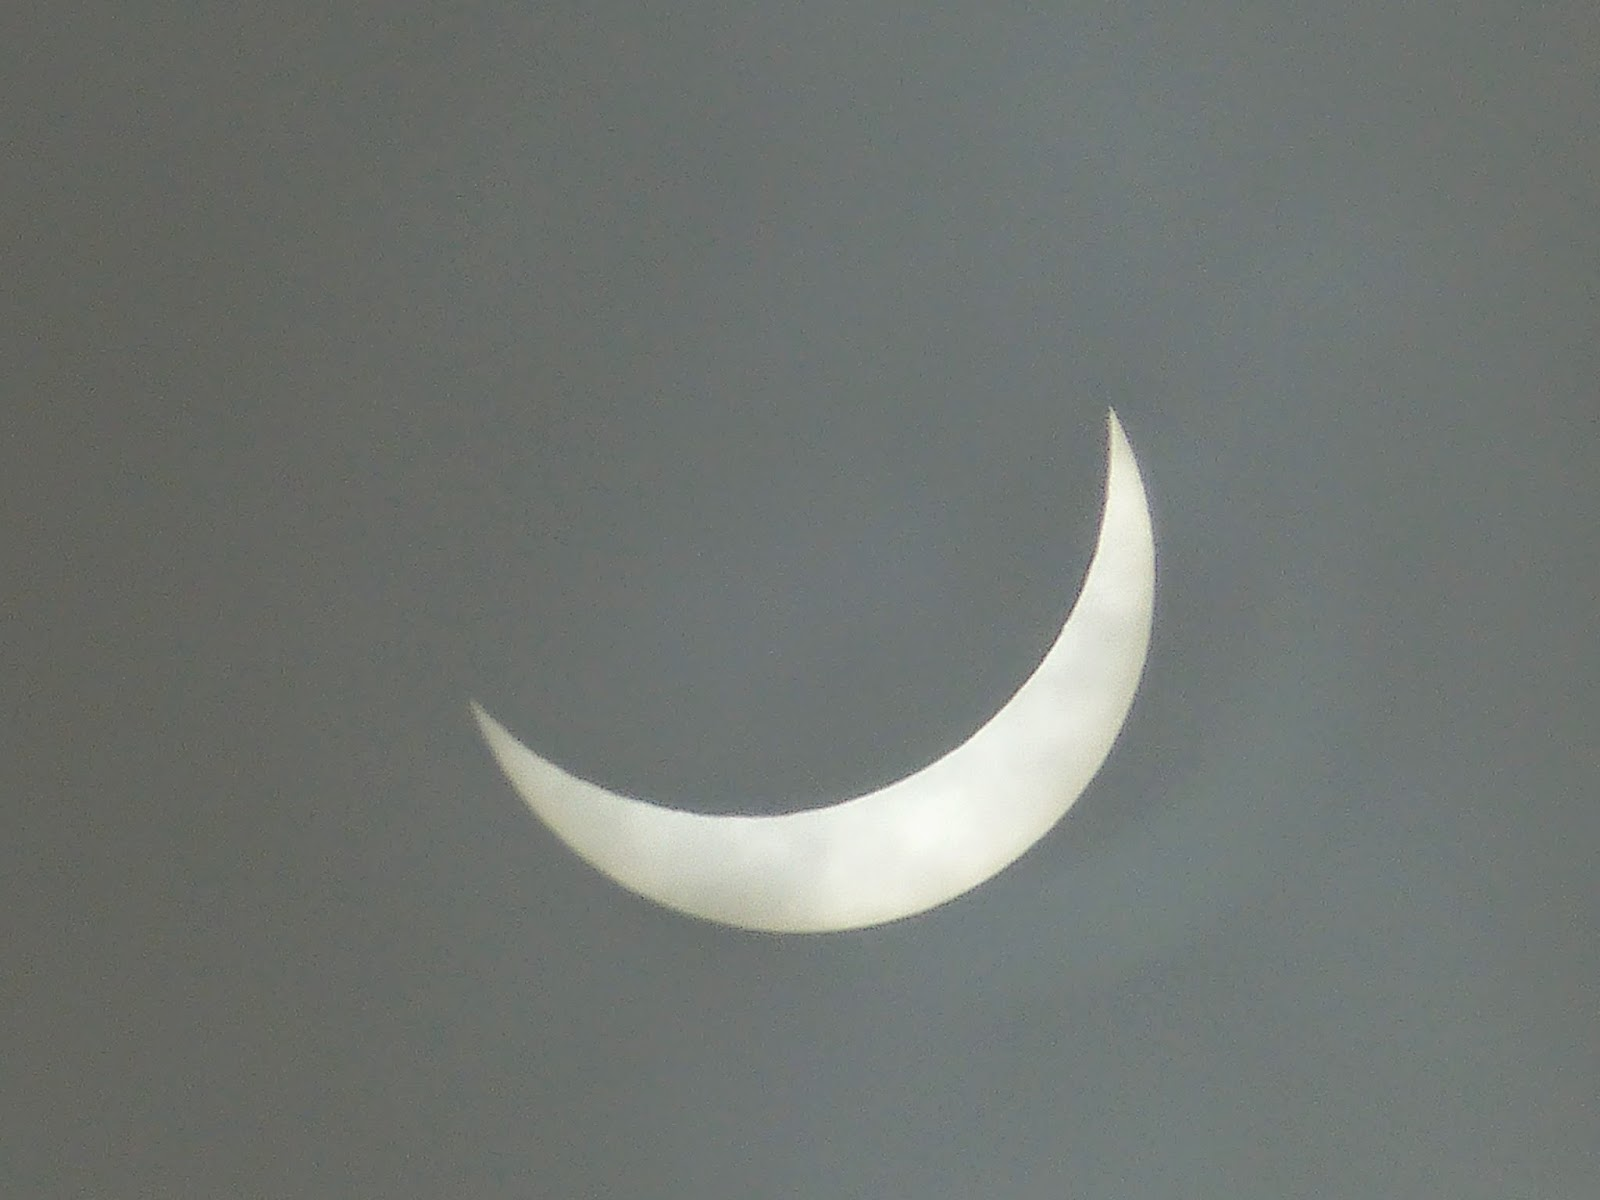 Solar eclipse 20 March 2015 Den Haag, Holland